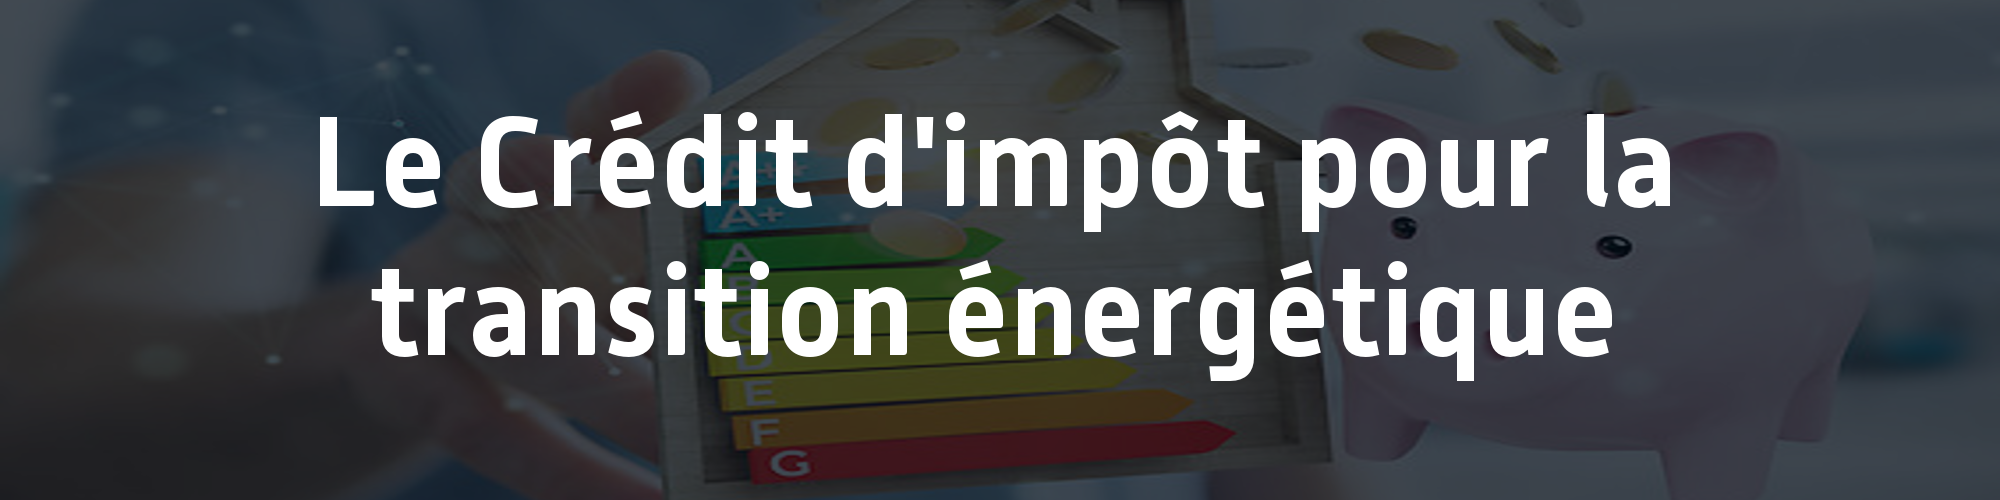 credit impot transition energetique fiscalite cite